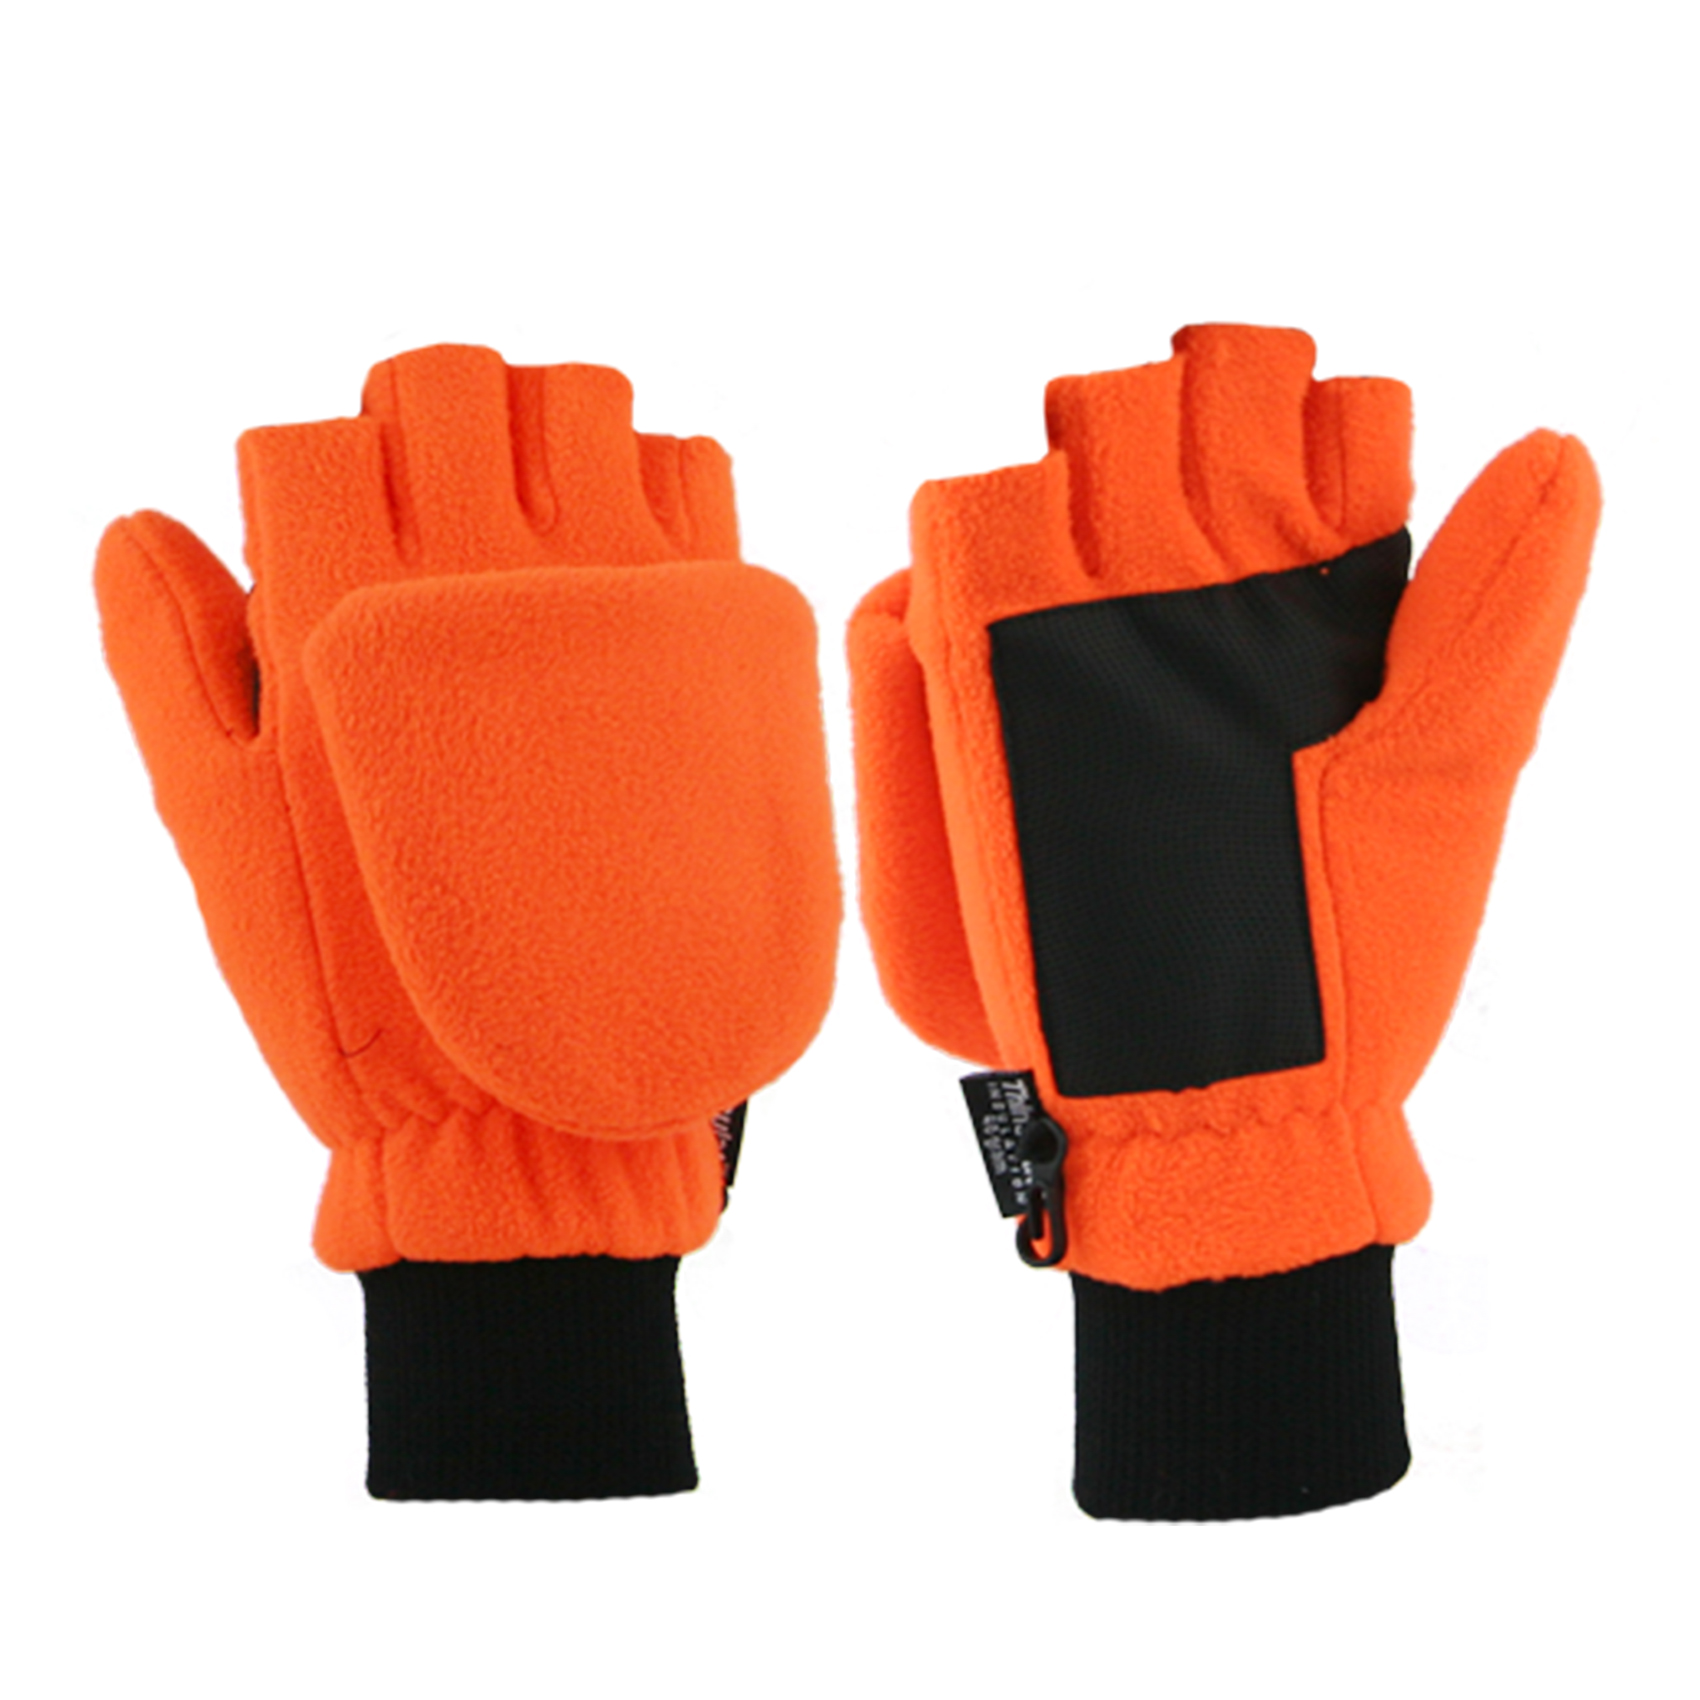 Thinsulate Convertible Mittens 89095 Blaze Orange (also available in Blk,Grey and Navy asst 89094- must order in increments of 12)  Available in a full glove too